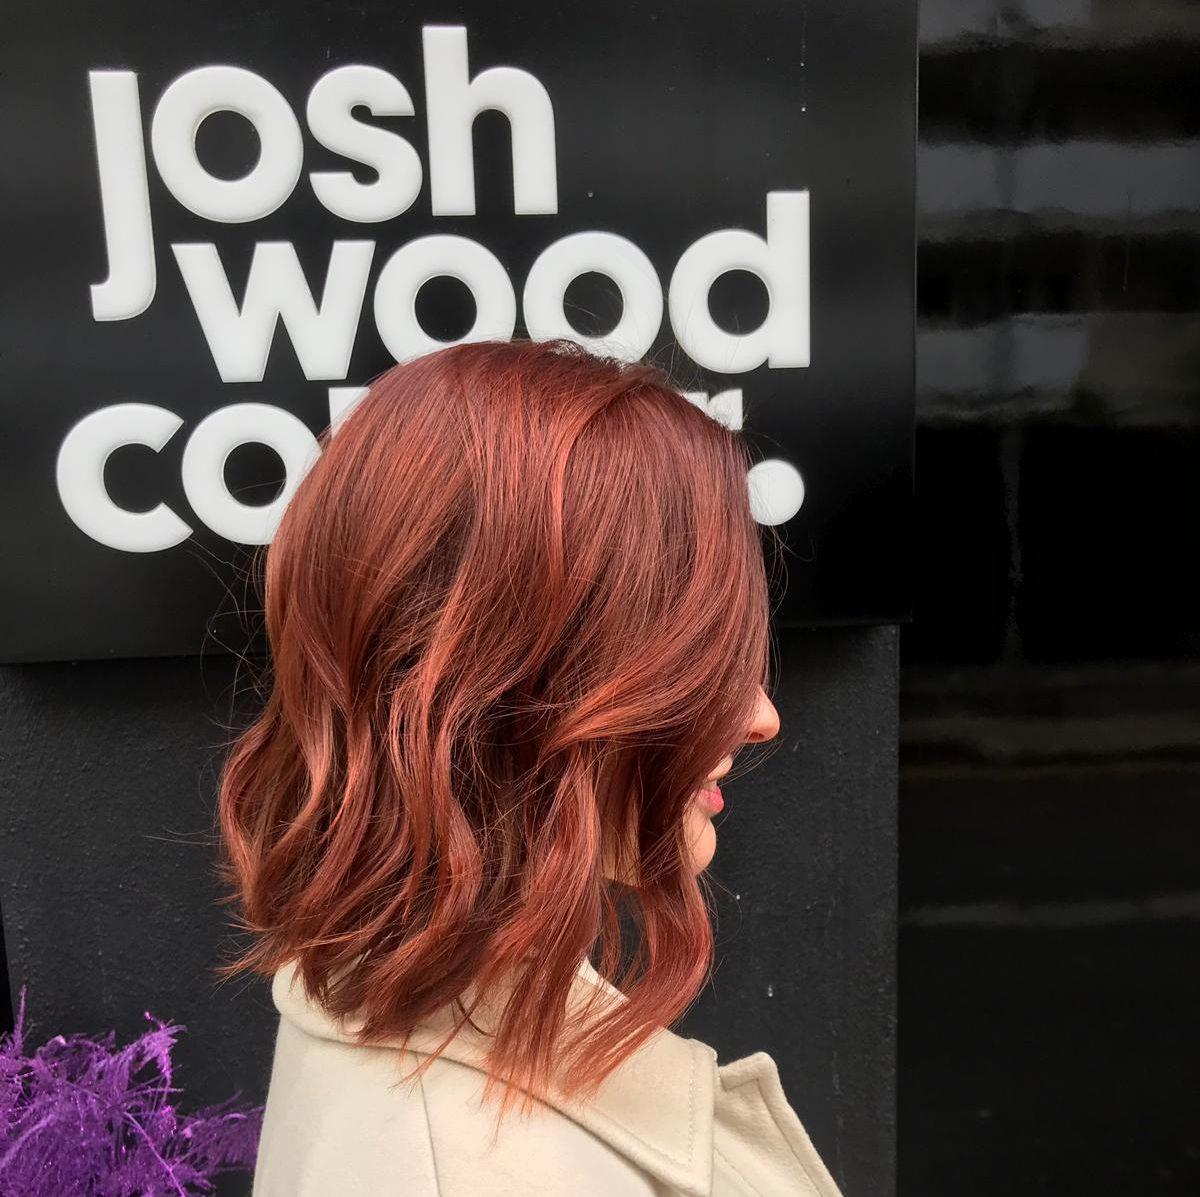 Discover The Best Shade Of Red Hair To Flatter Your Skin Tone Josh Wood Community